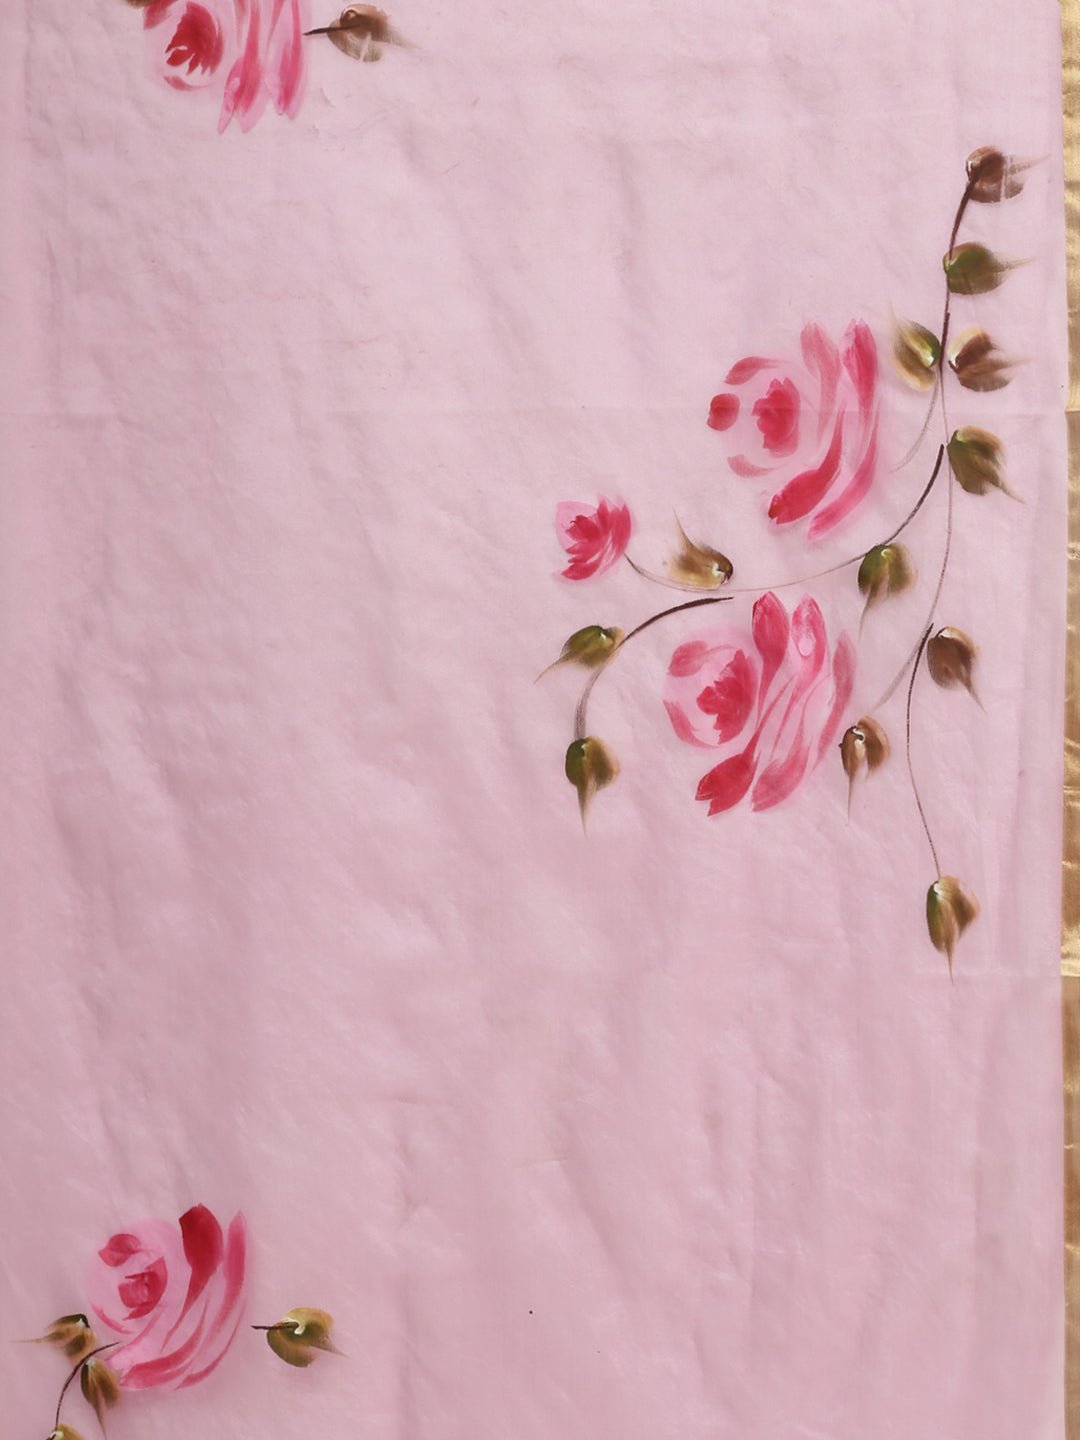 Pink & Green Hand Painted Organza Saree-Saree-Kalakari India-BHKPSA0125-Hand Painted, Organza, Sarees, Sustainable Fabrics, Traditional Weave-[Linen,Ethnic,wear,Fashionista,Handloom,Handicraft,Indigo,blockprint,block,print,Cotton,Chanderi,Blue, latest,classy,party,bollywood,trendy,summer,style,traditional,formal,elegant,unique,style,hand,block,print, dabu,booti,gift,present,glamorous,affordable,collectible,Sari,Saree,printed, holi, Diwali, birthday, anniversary, sustainable, organic, scarf, onli